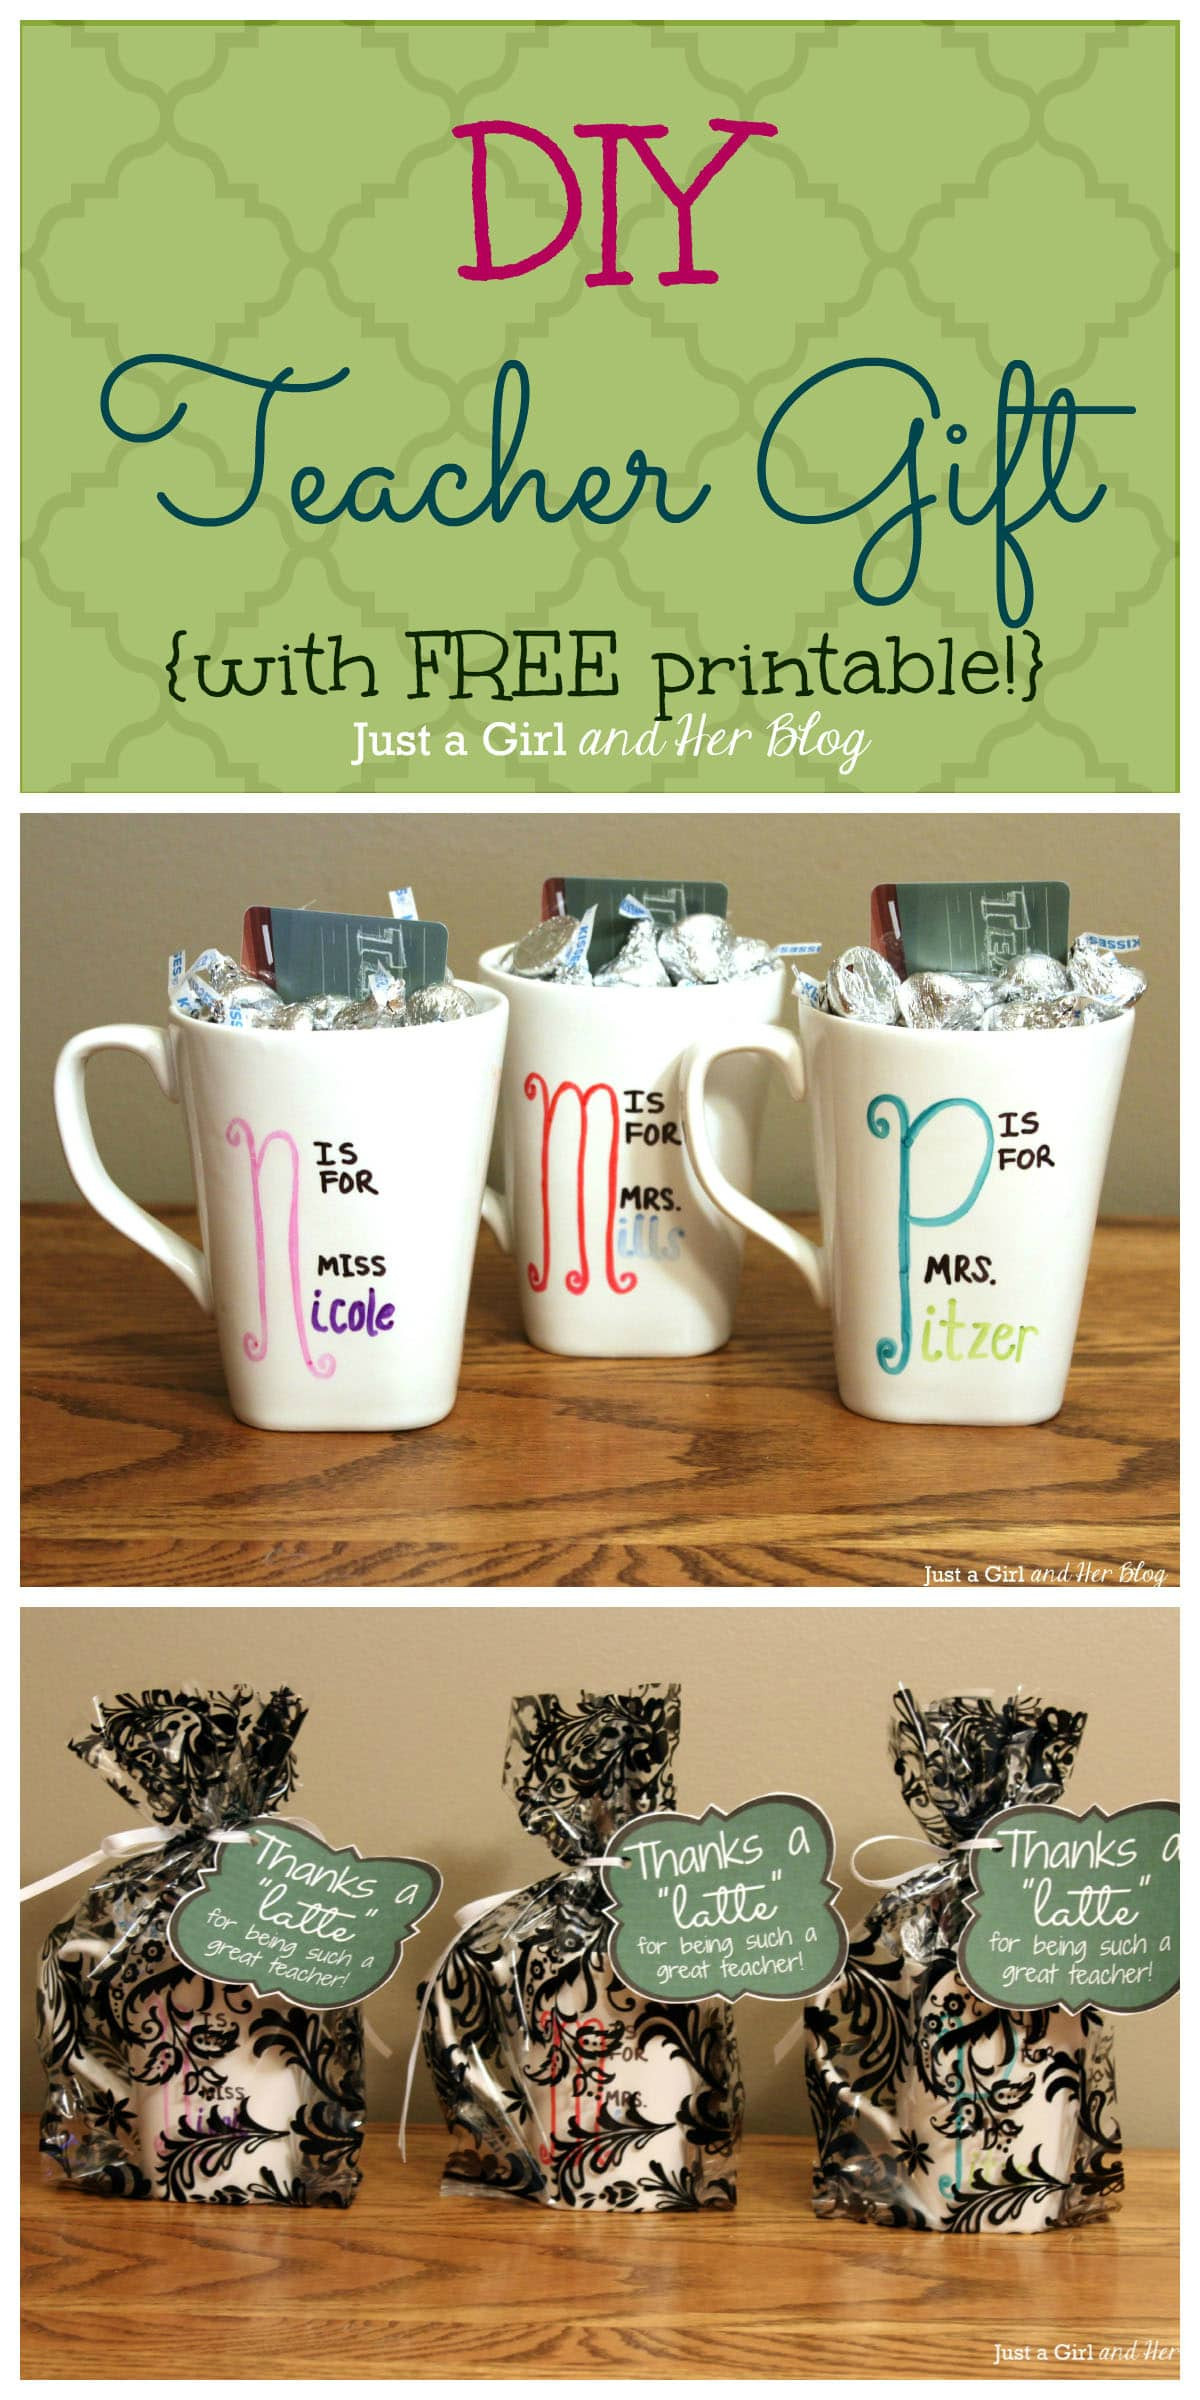 DIY Christmas Gift For Teachers  DIY Teacher Gift with FREE Printable